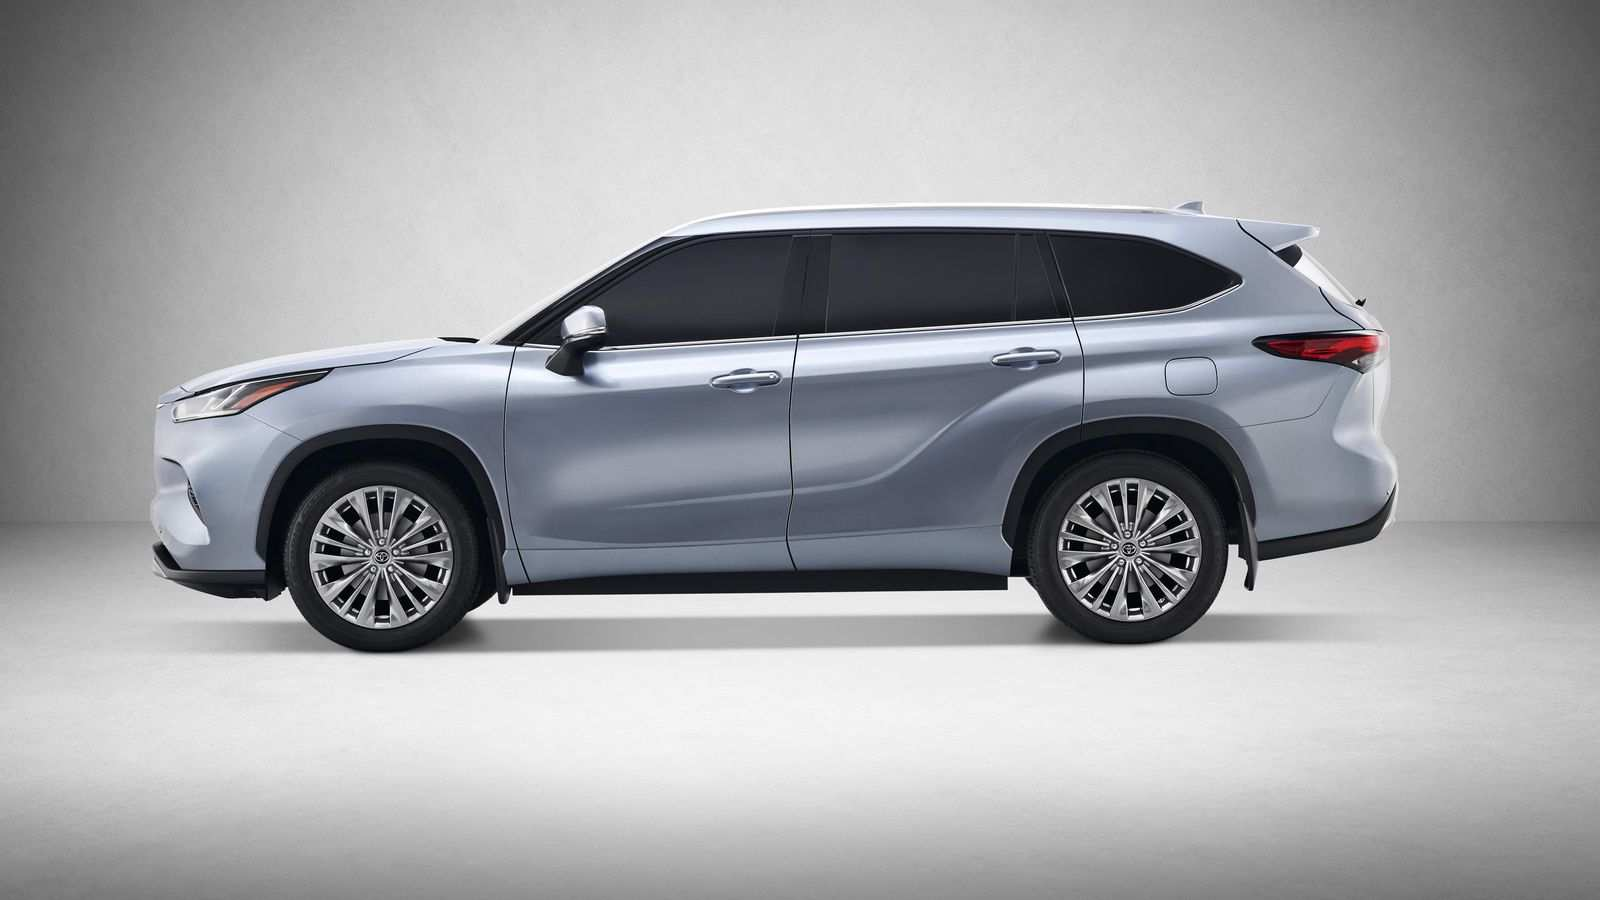 60 The Best Toyota Outlander 2020 New Review